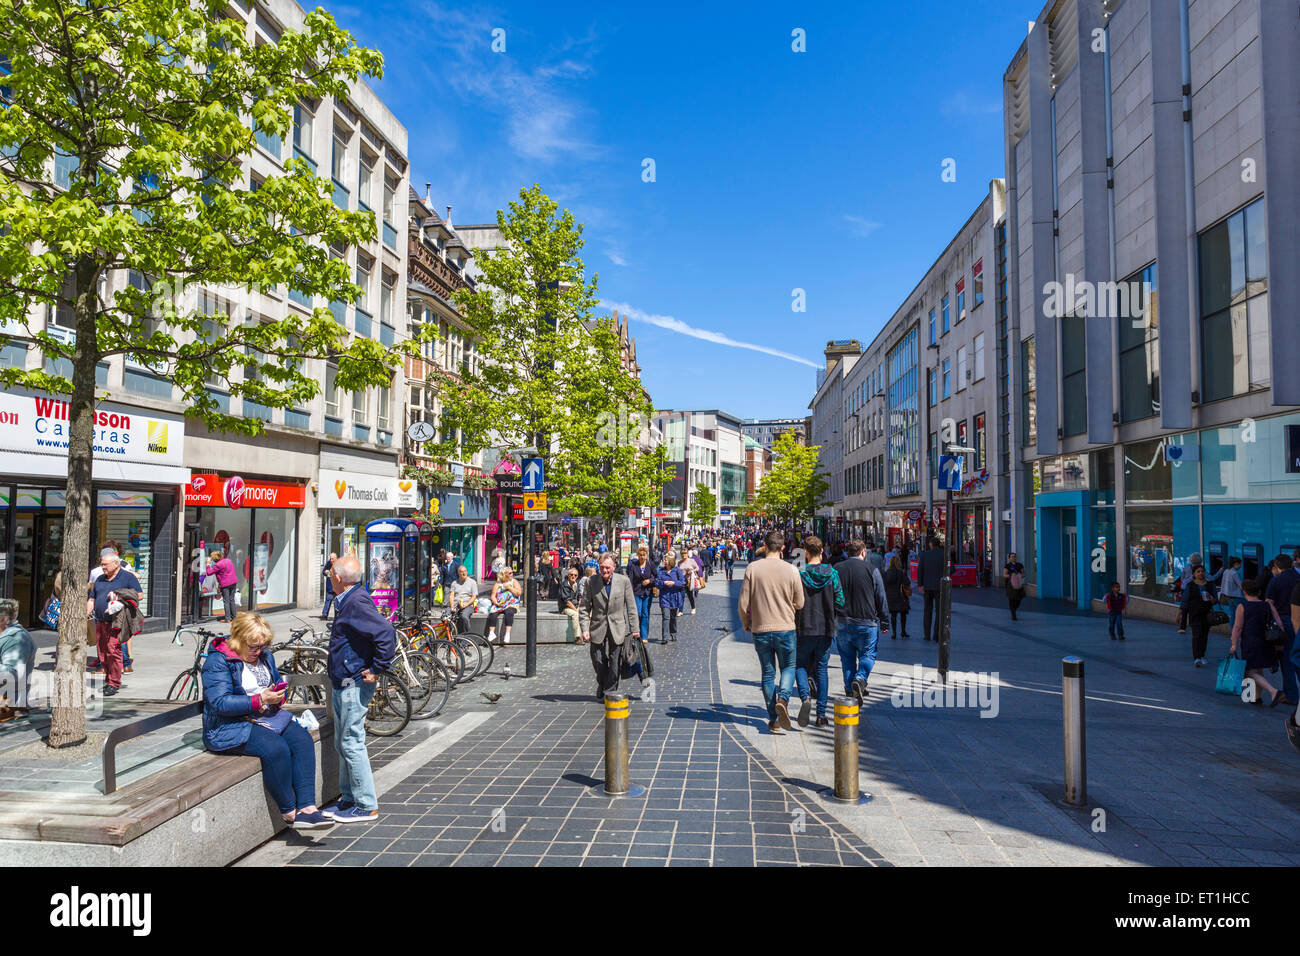 Shops on Lord Street in the city centre, Liverpool, Merseyside, England, UK - Stock Image